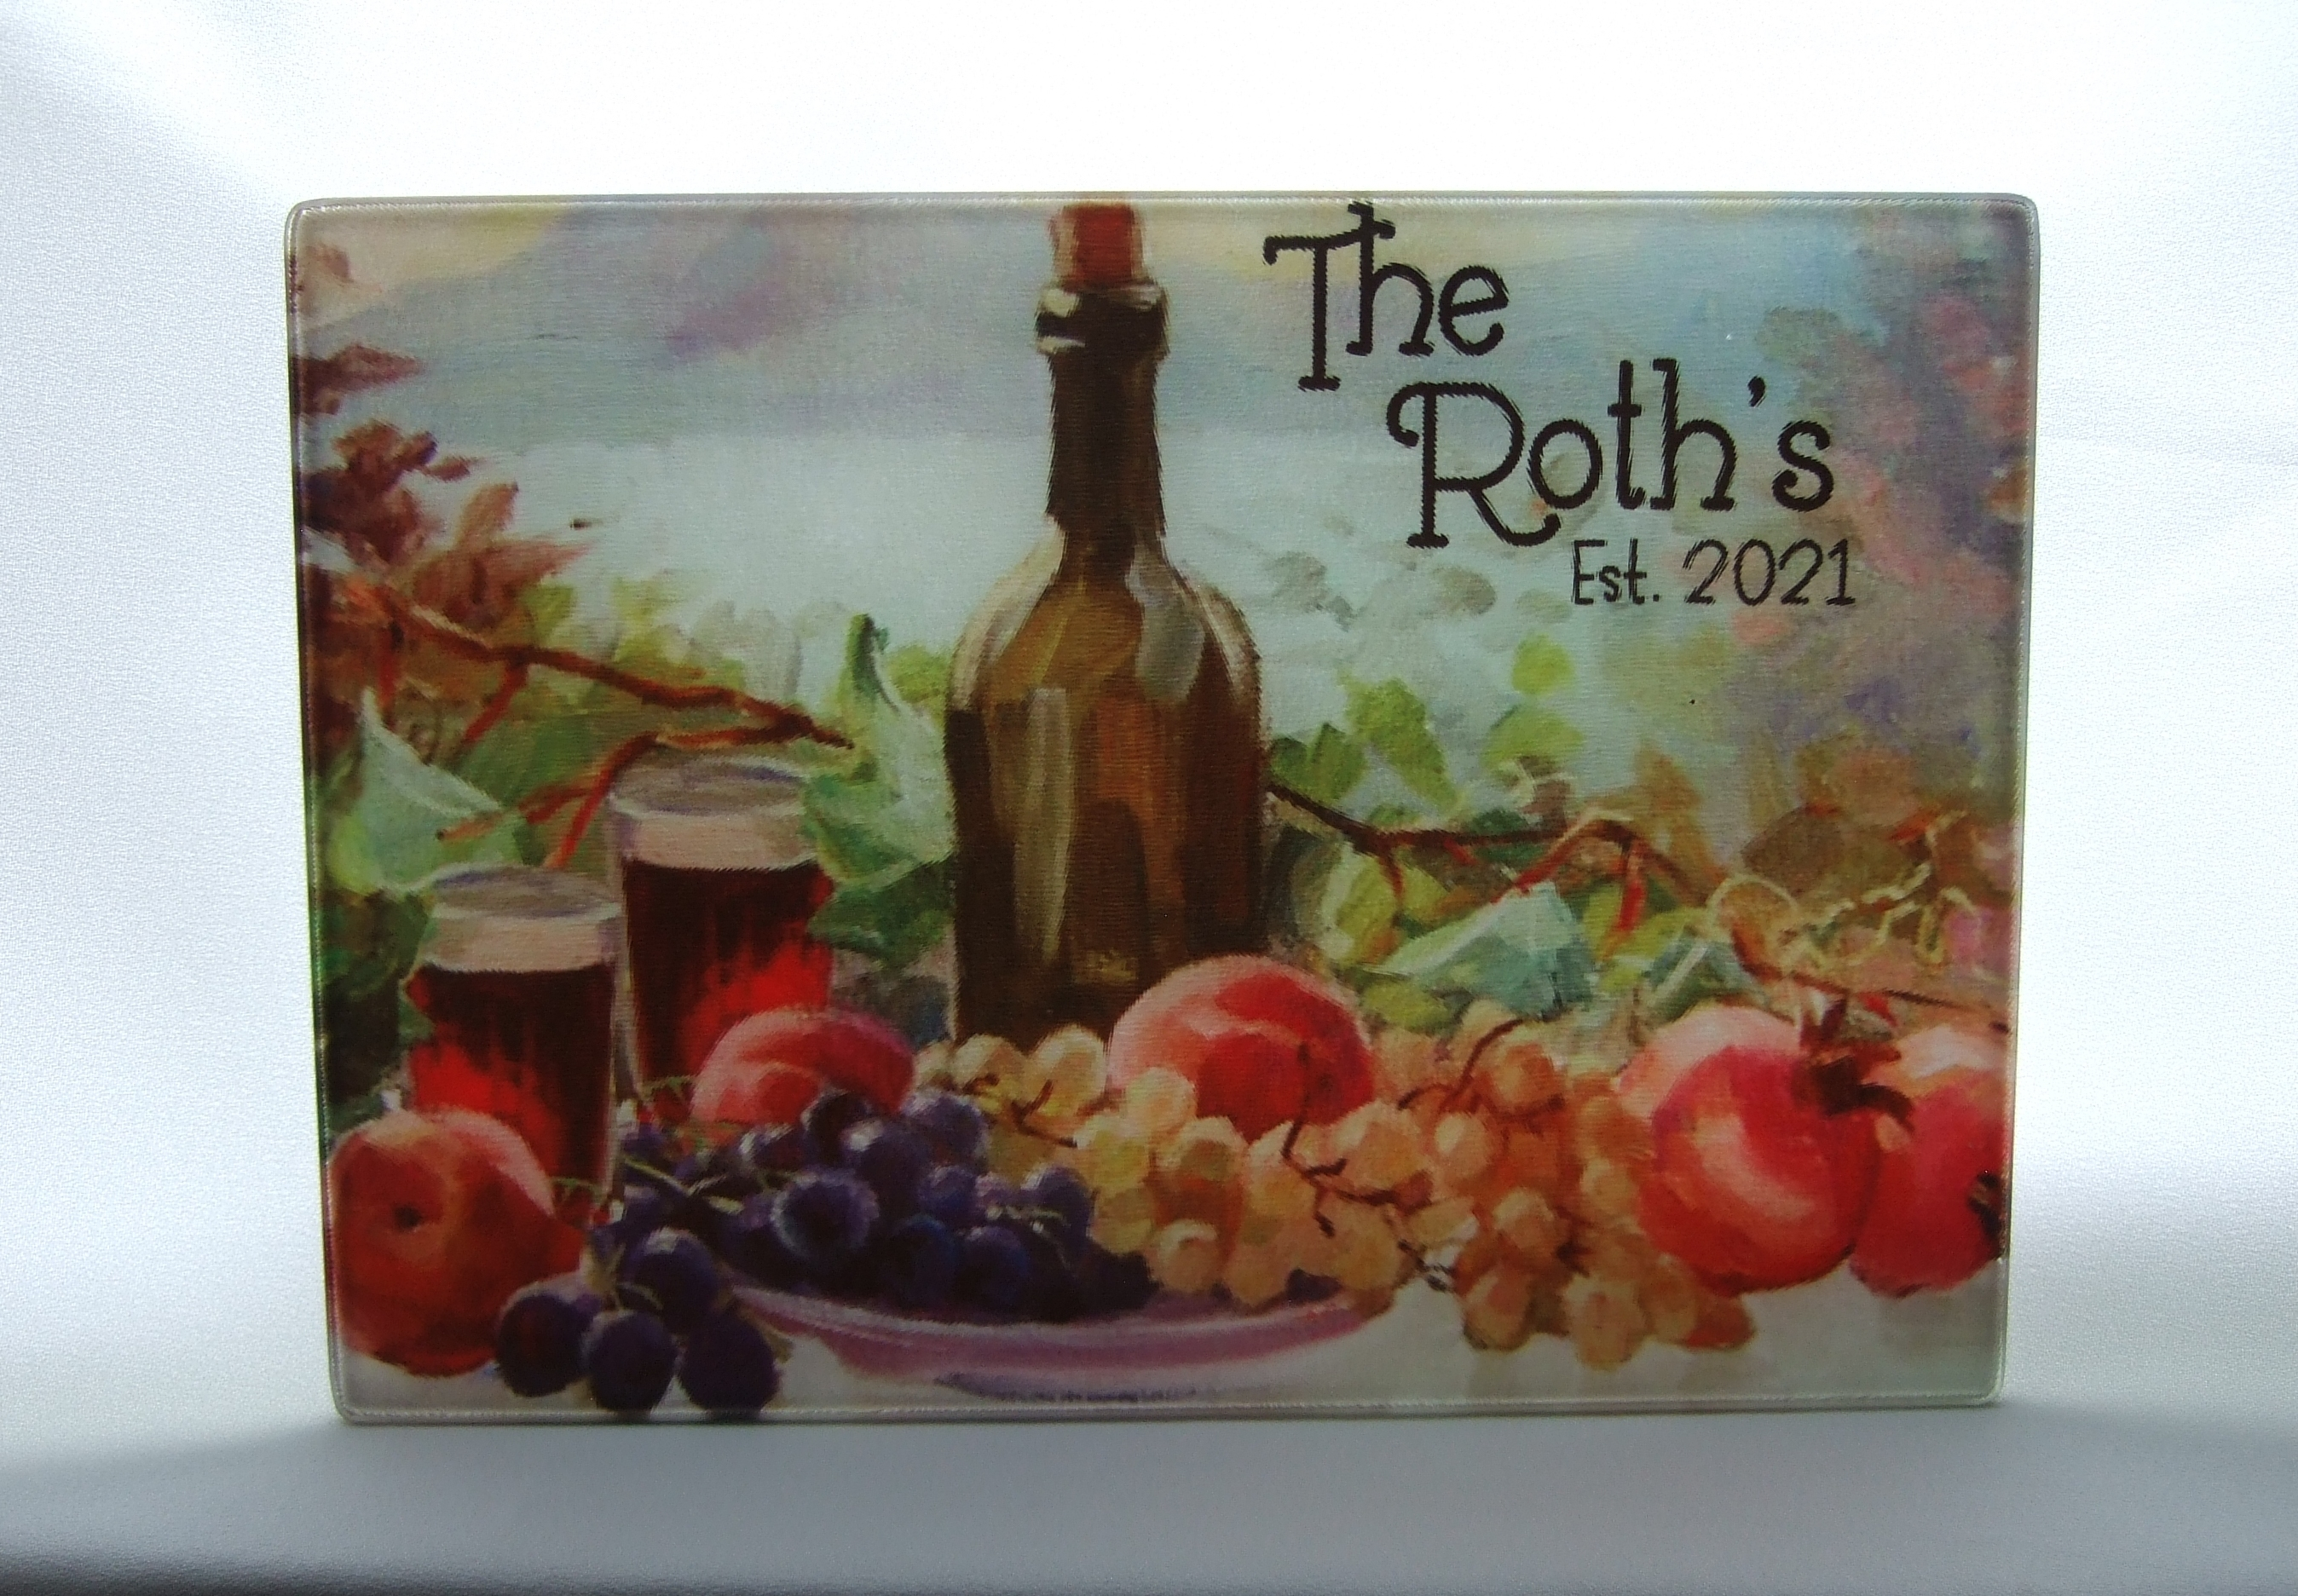 Personalized glass cutting board with wine and fruit theme GCB1009